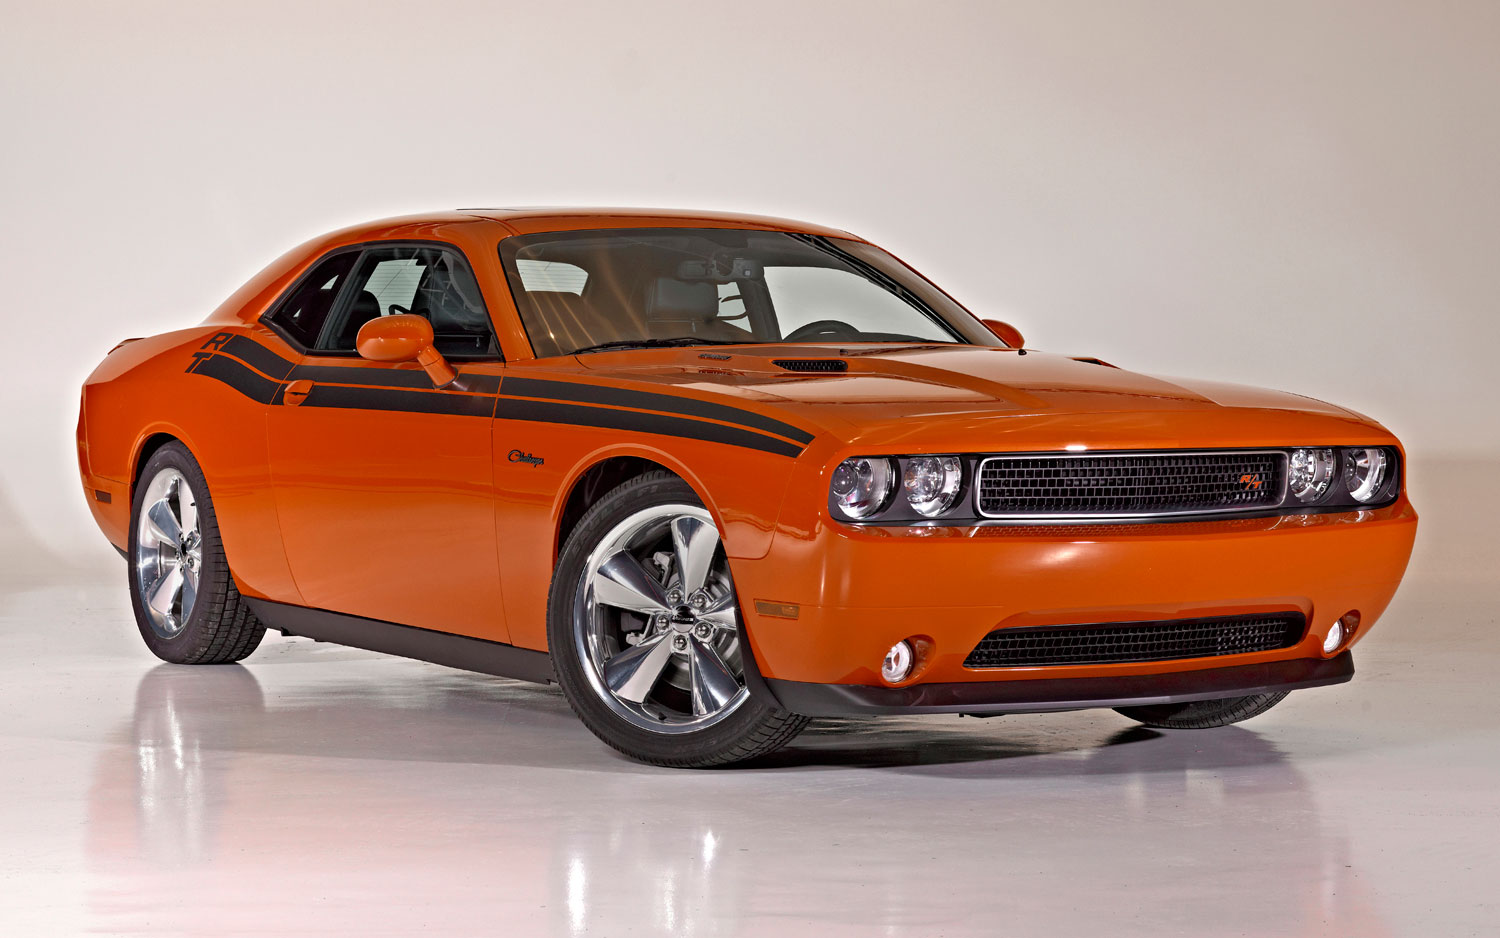 Pre-Owned Dodge Cars For Sale In Snohomish County